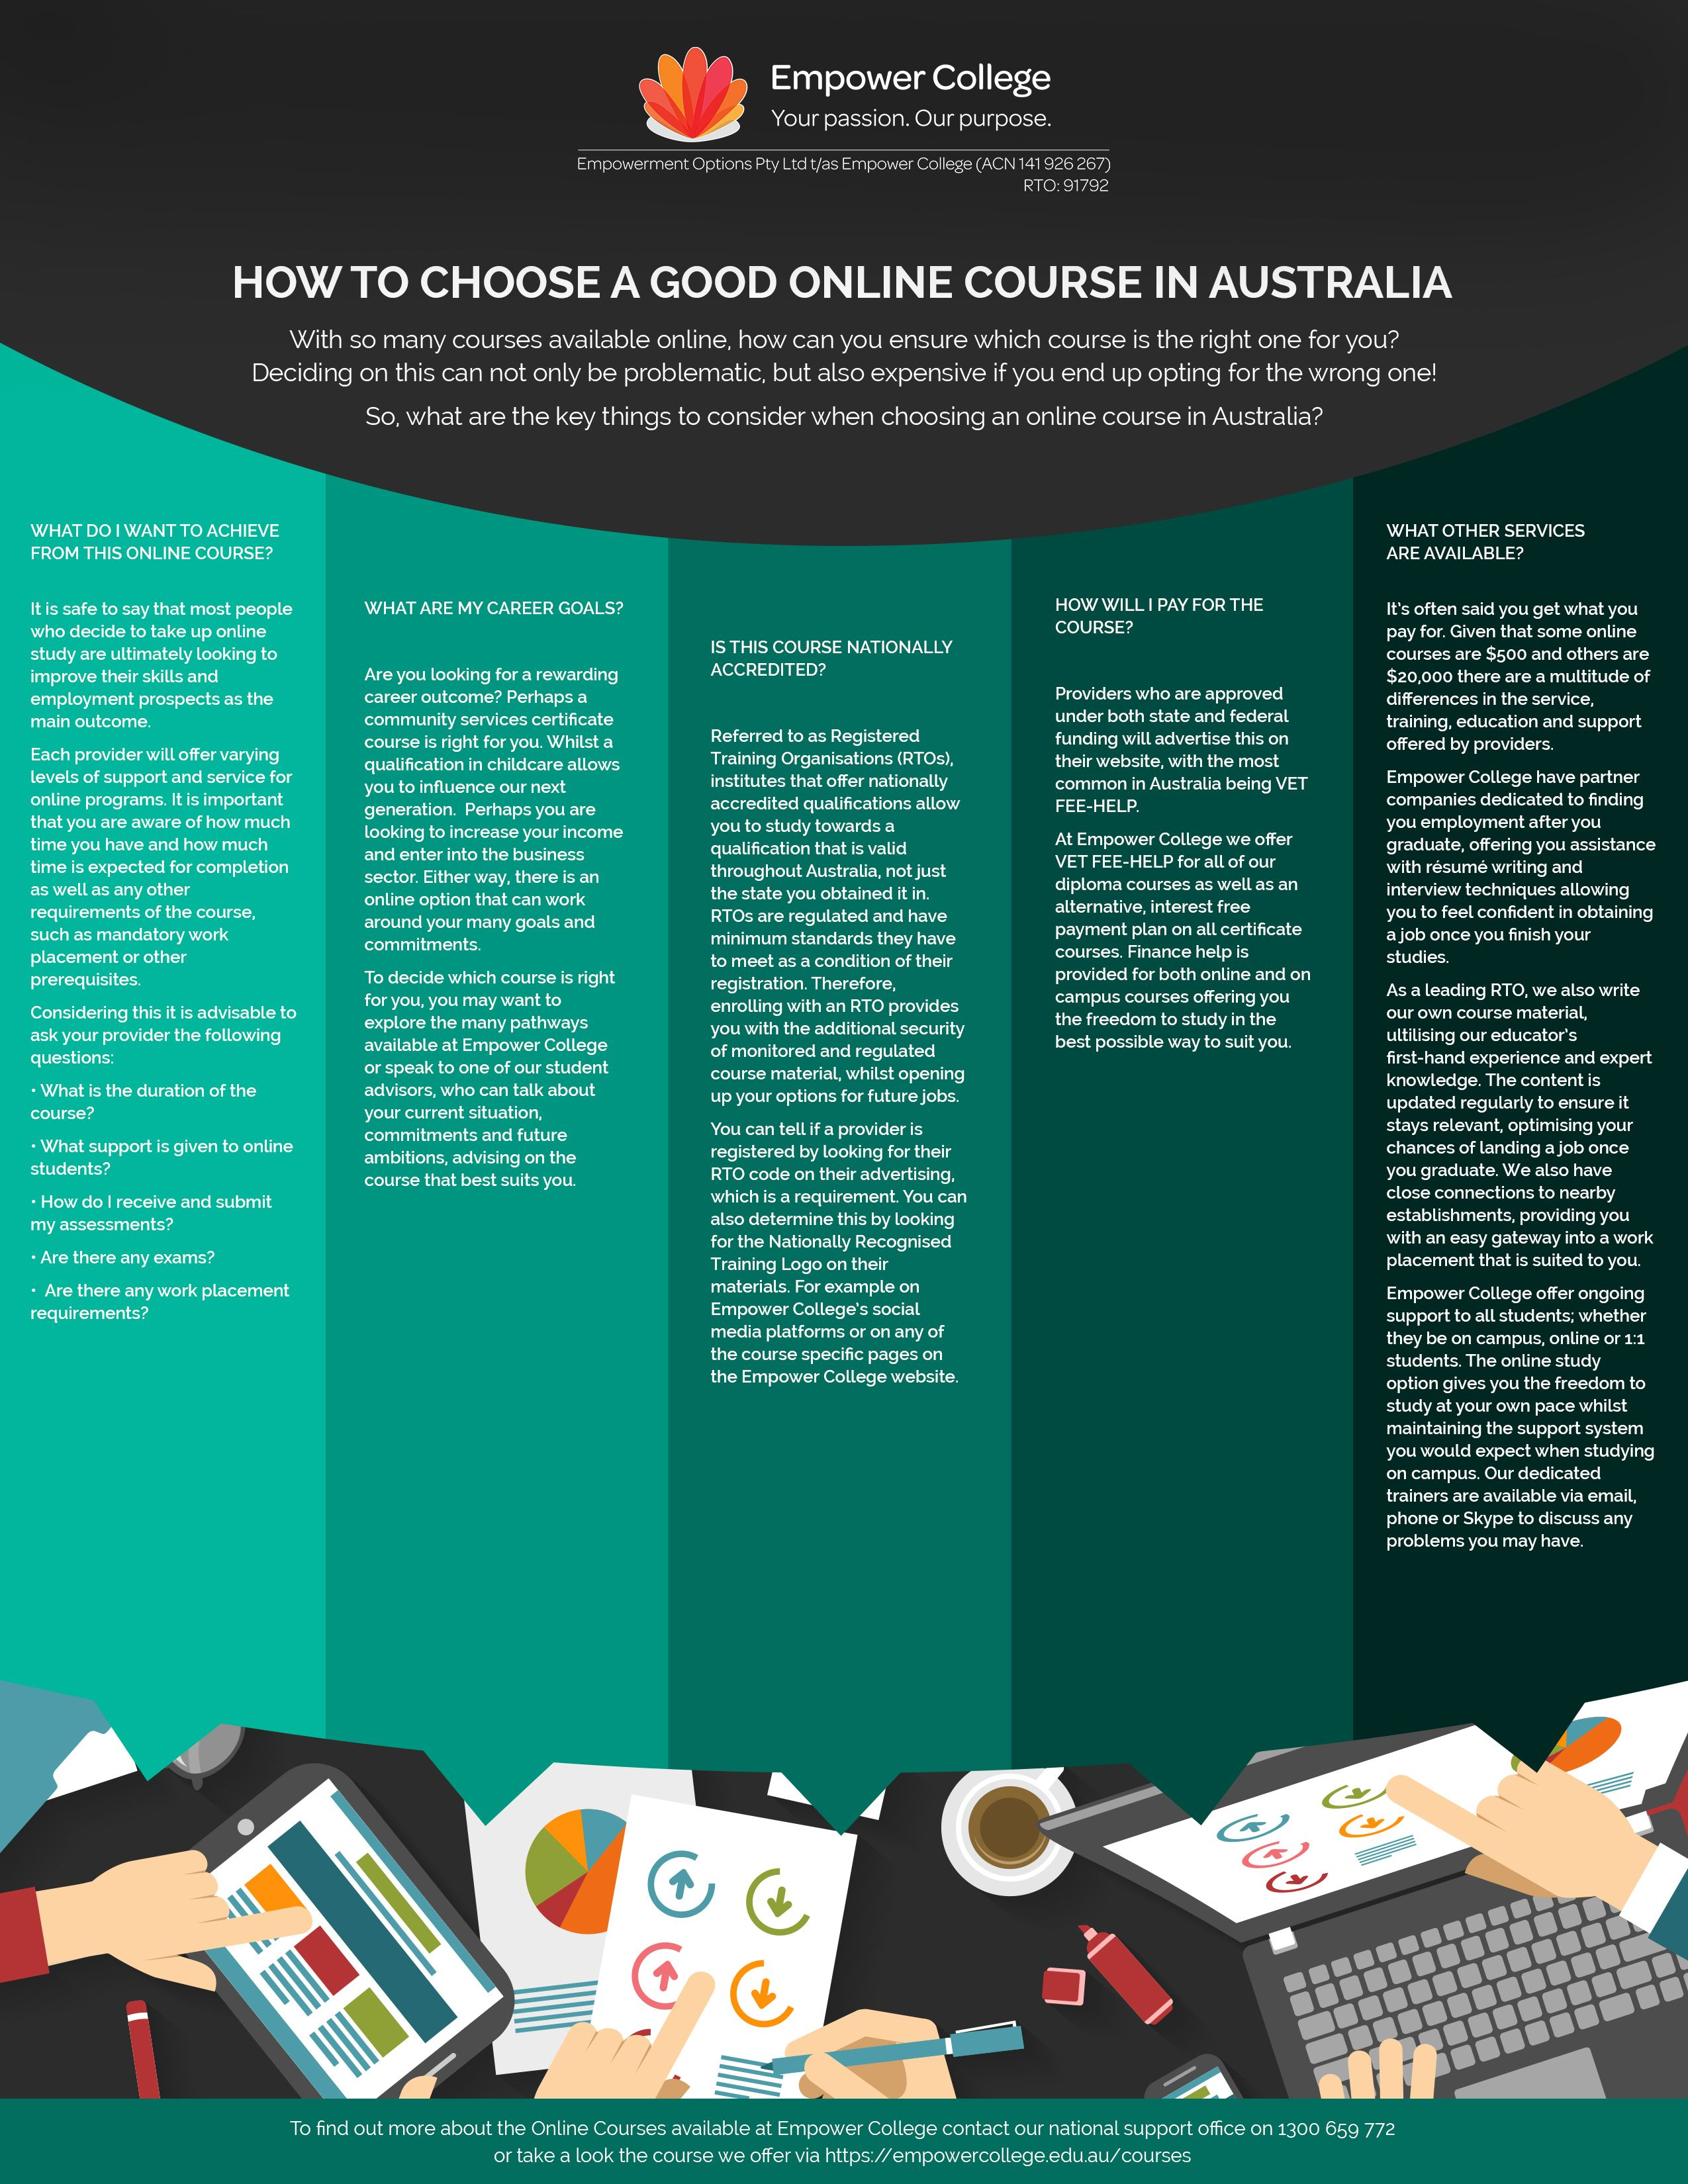 Choosing a good online course #empowercollege #online #course #study #studyonline #tips #studenttips